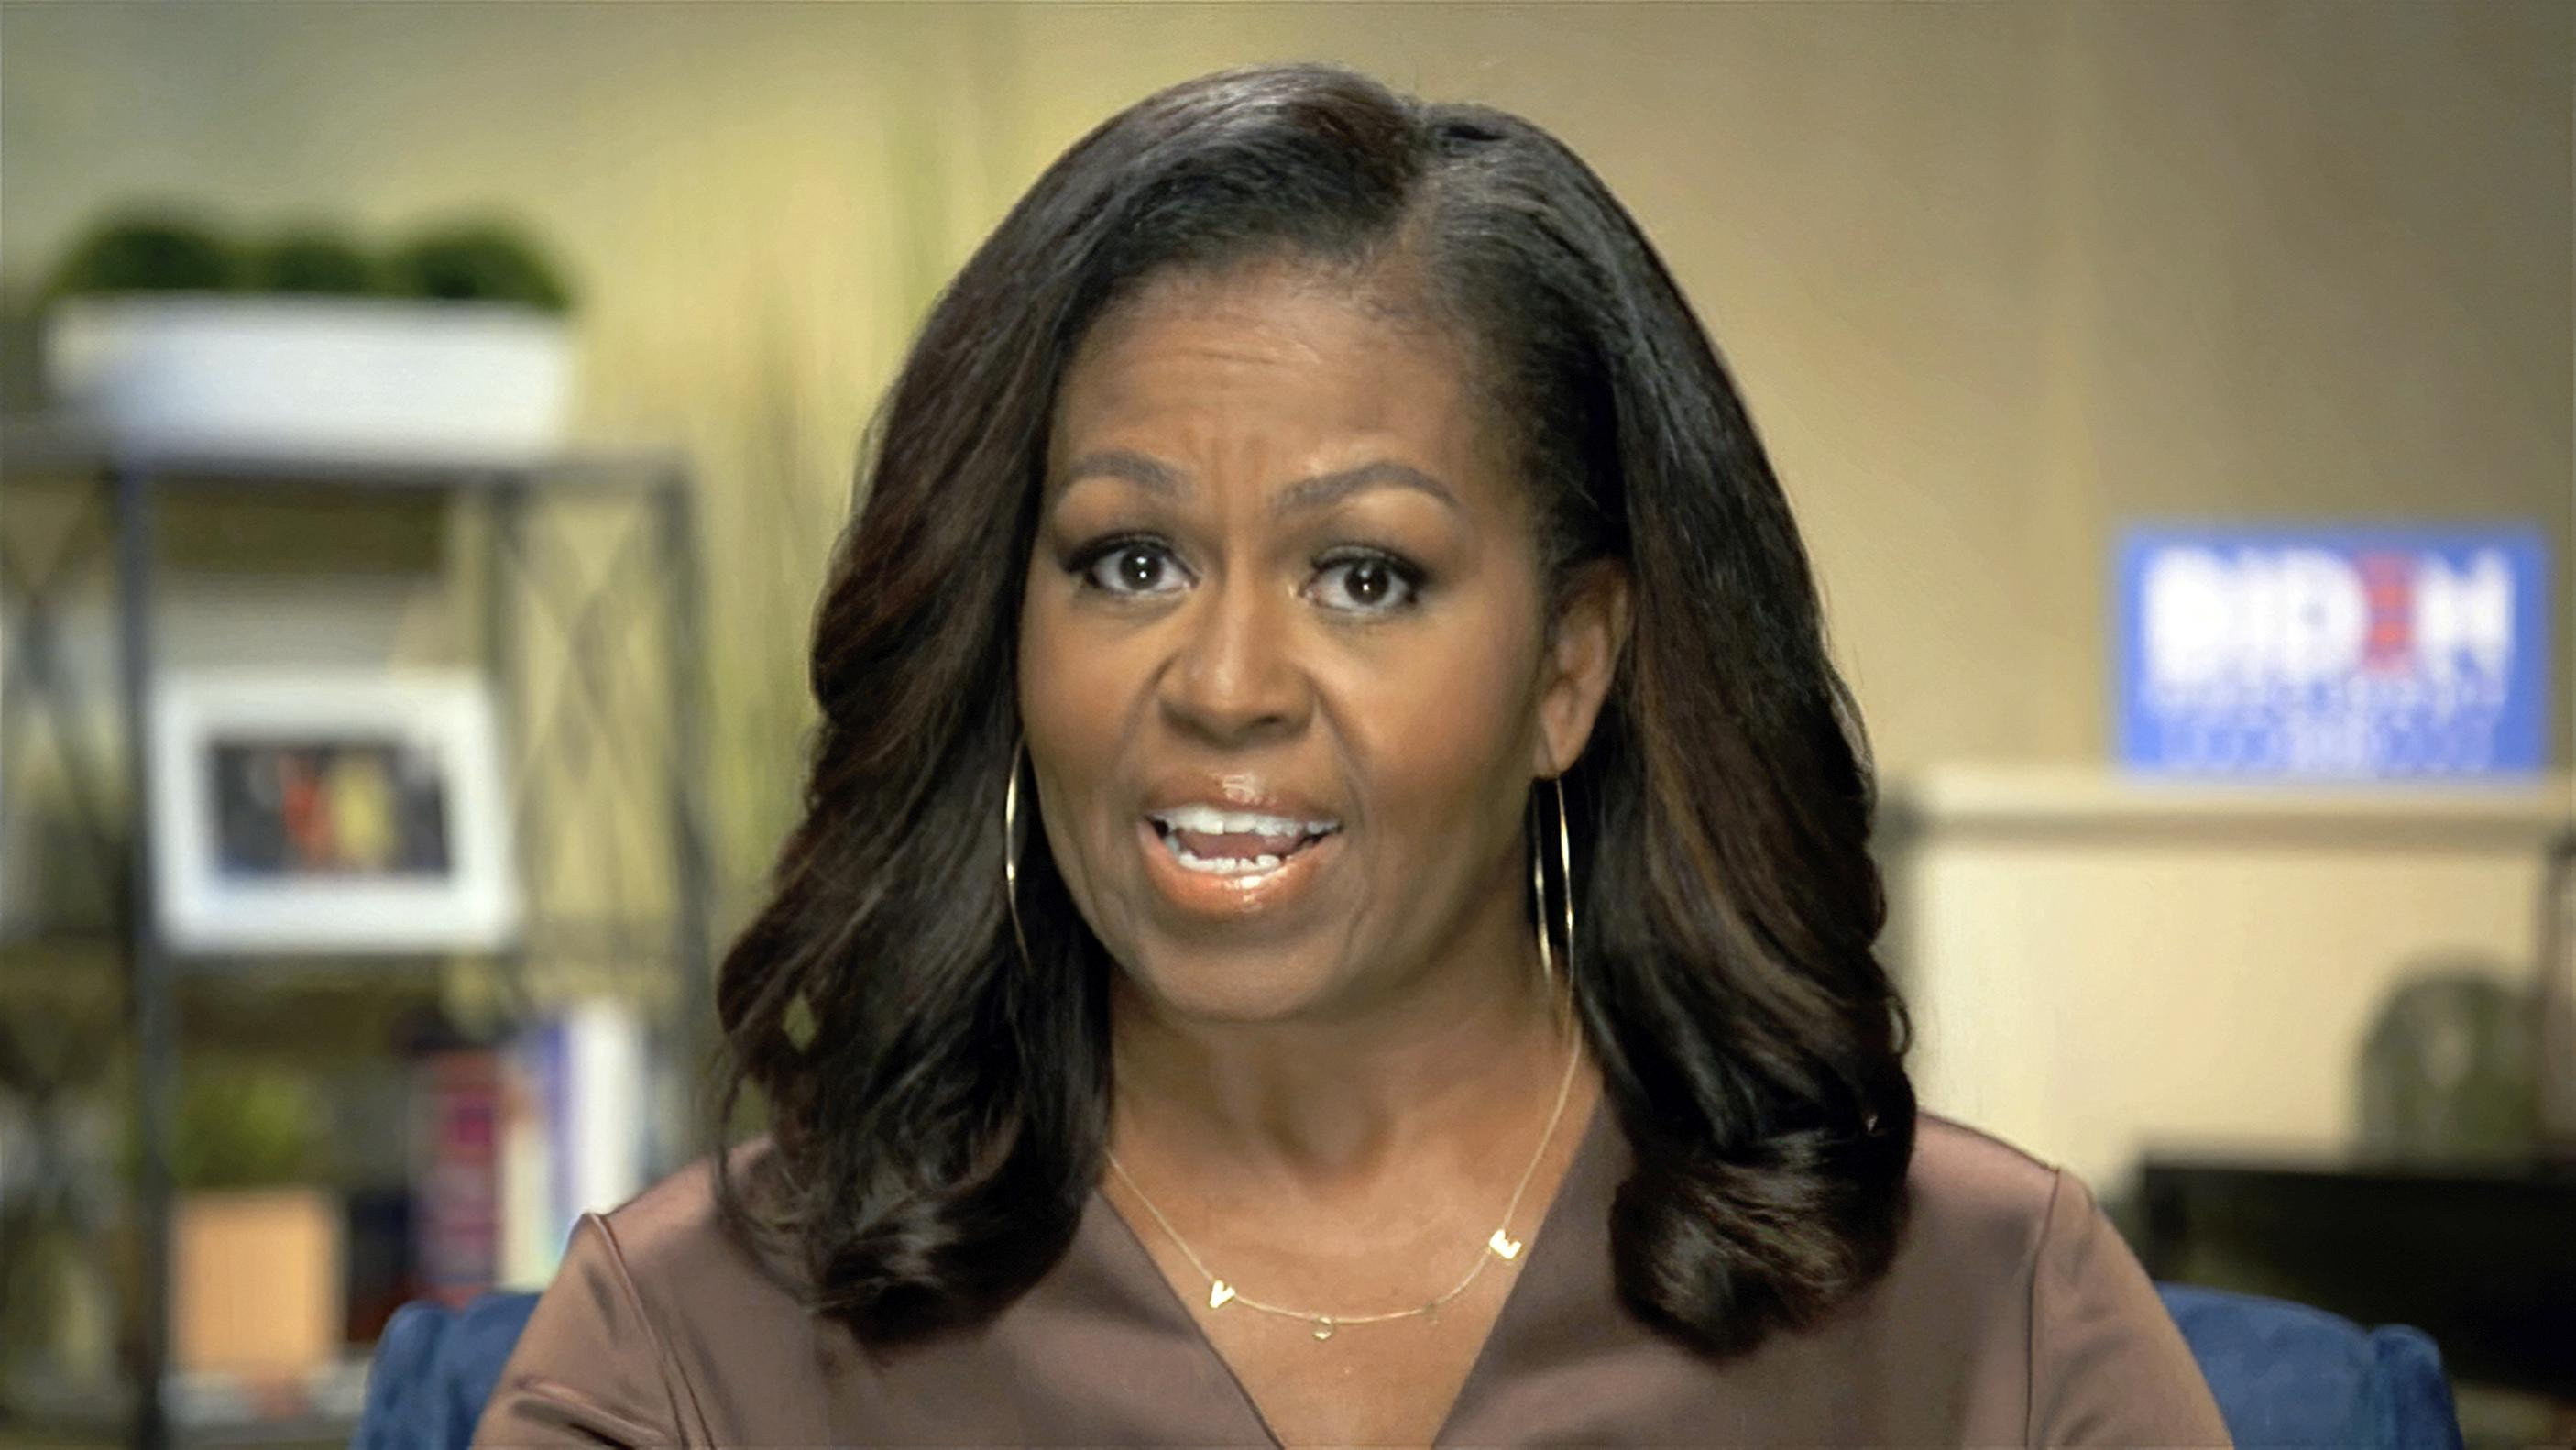 Michelle Obama White People Don T Even See Me When I M In Public Washington Times